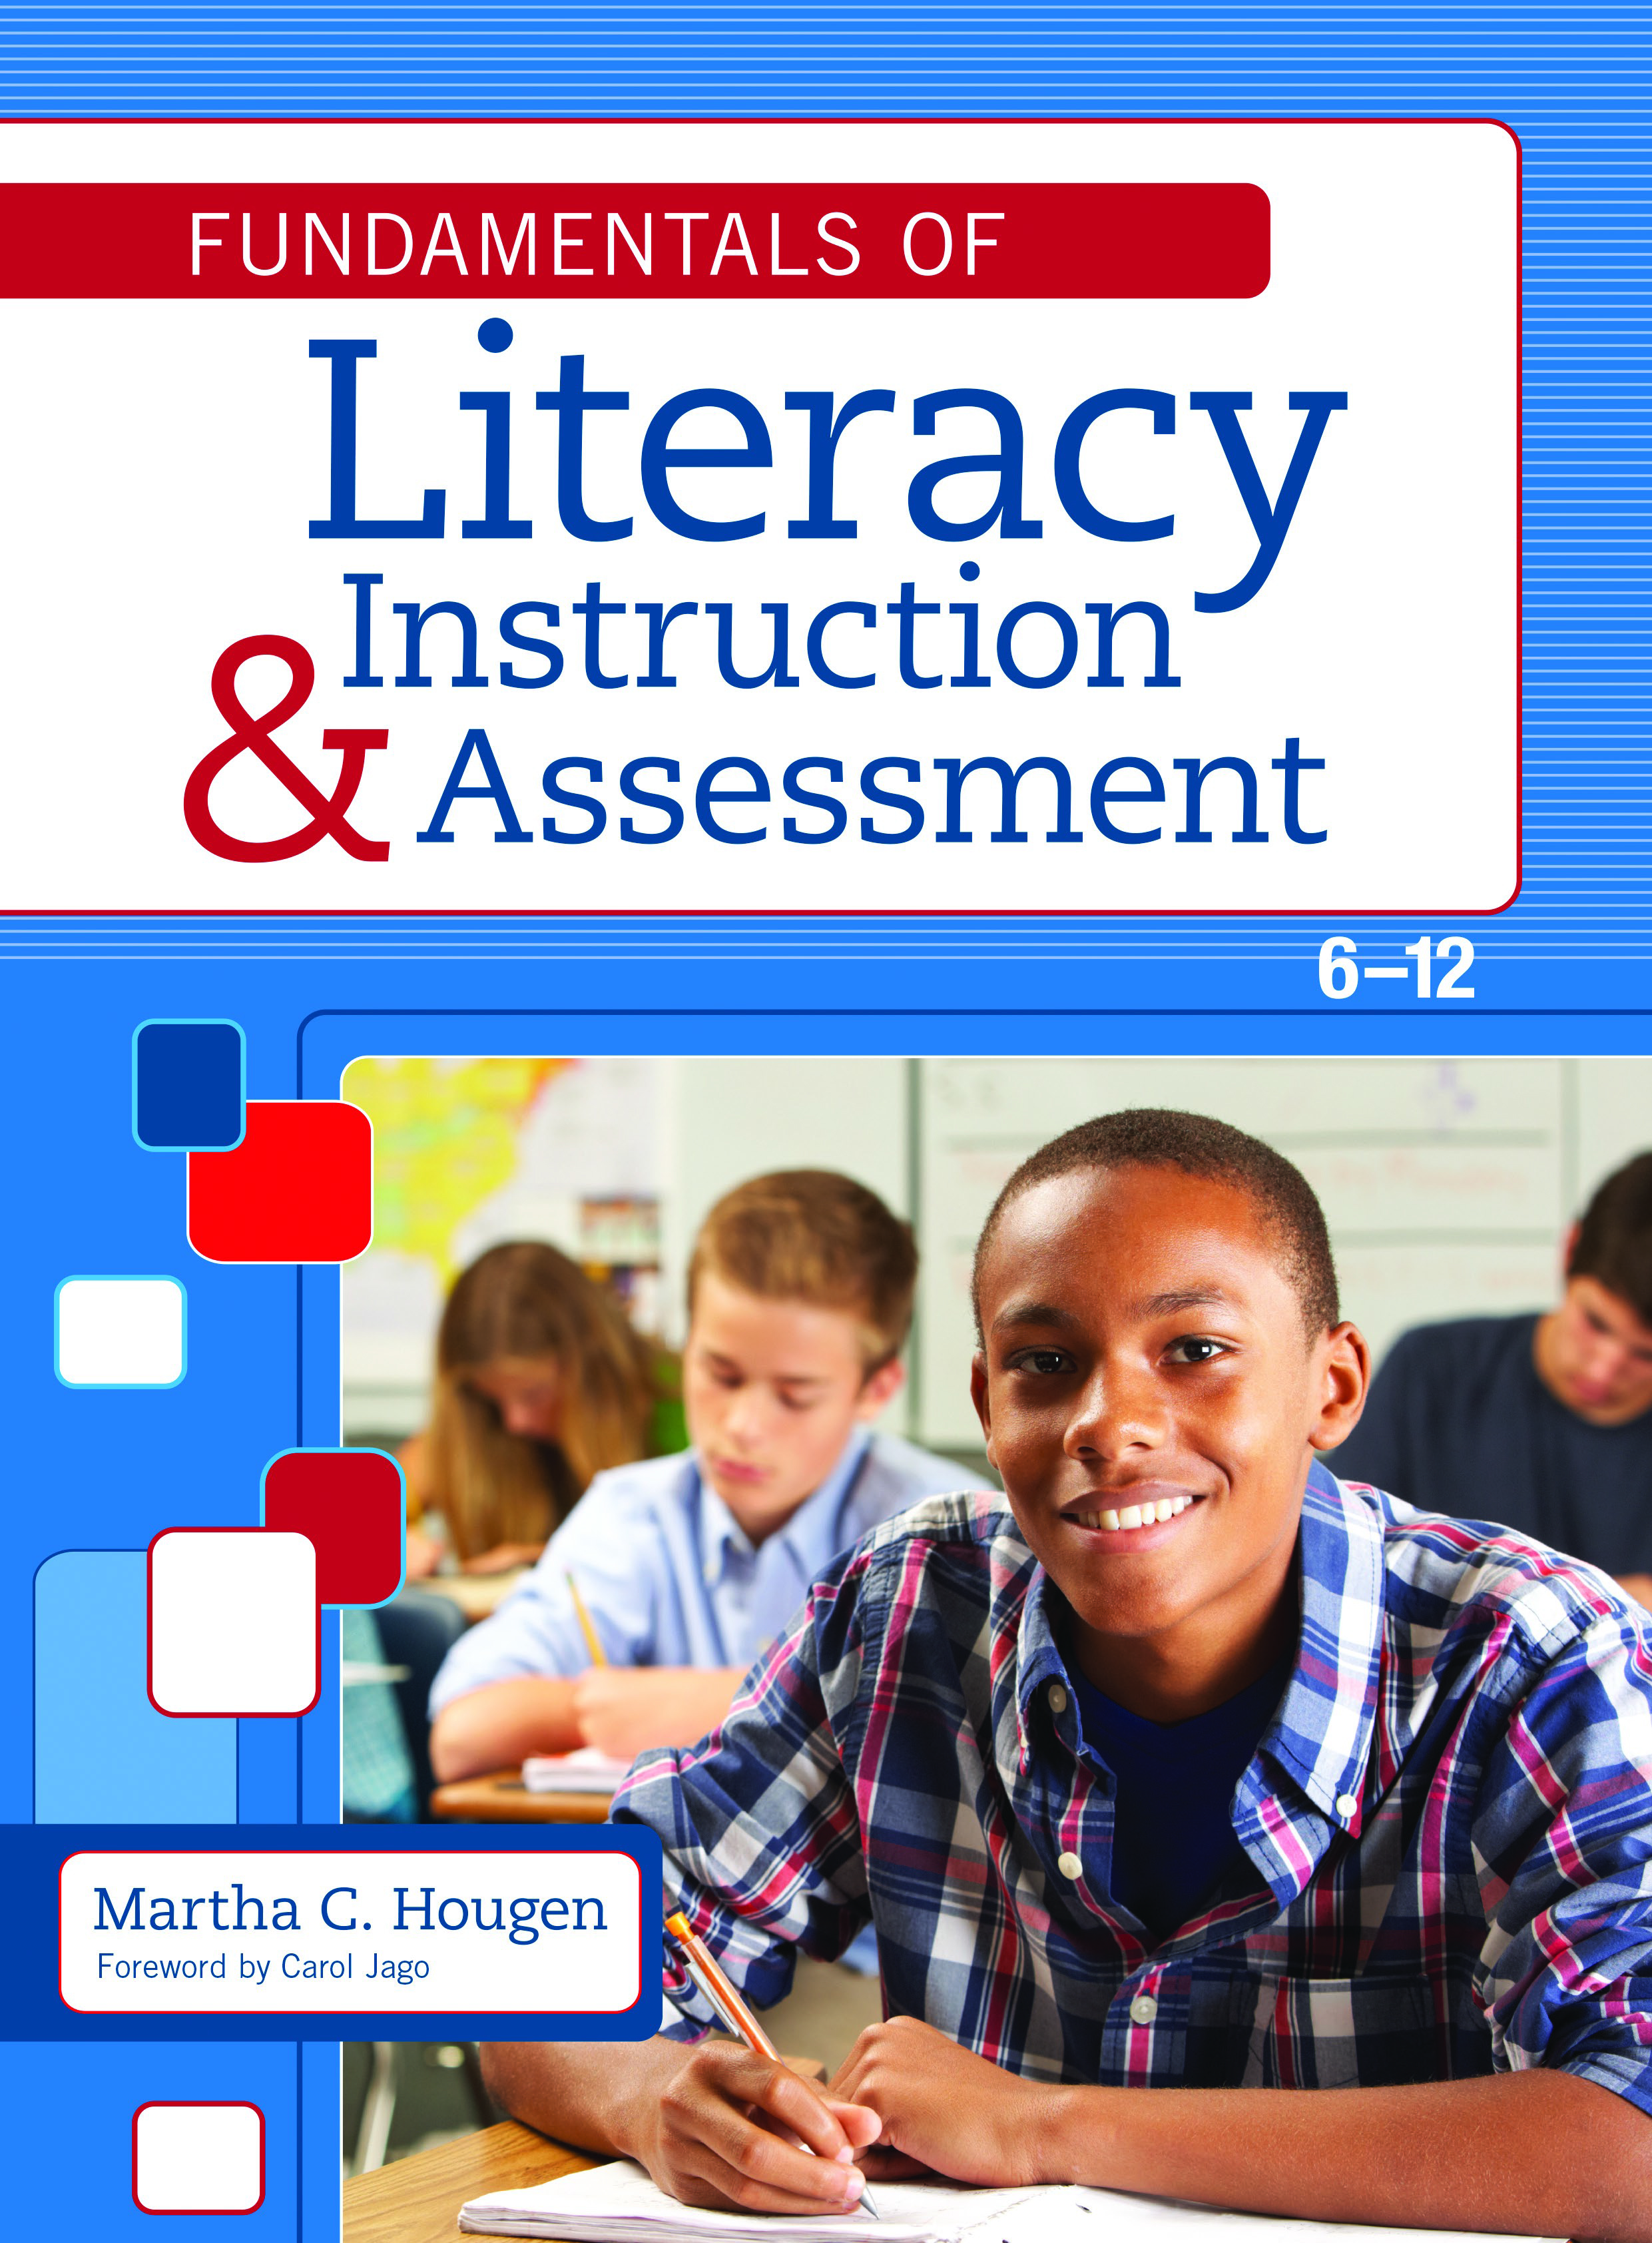 literacy instruction assessment Martha Hougen